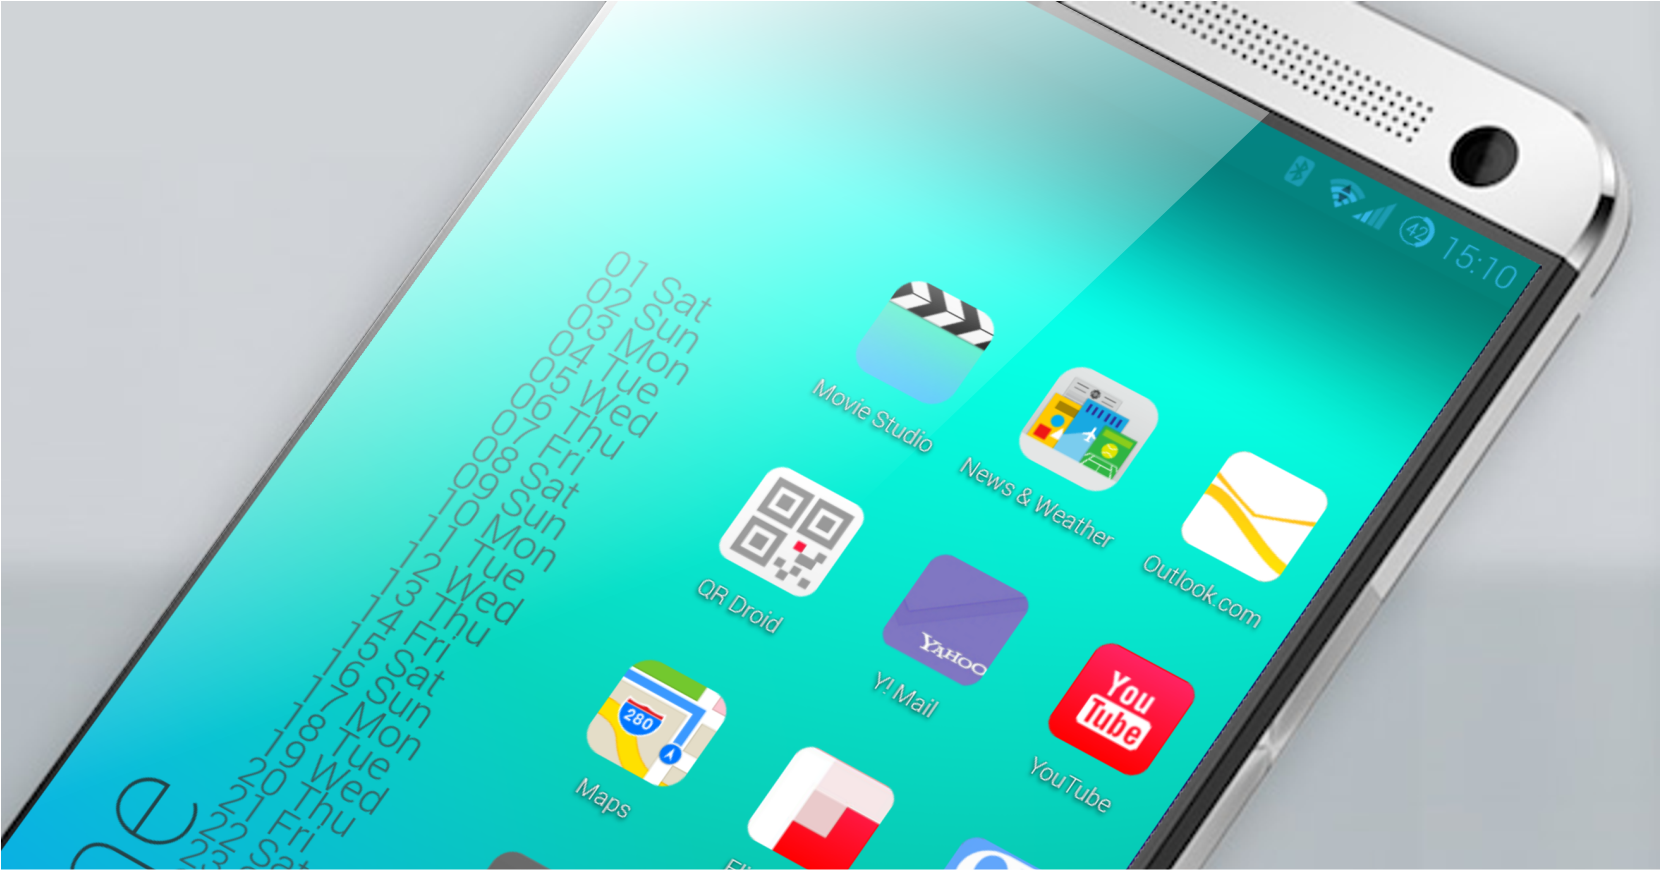 iOS 7 for Solo Launcher Theme 109 screenshot 2 1660x870